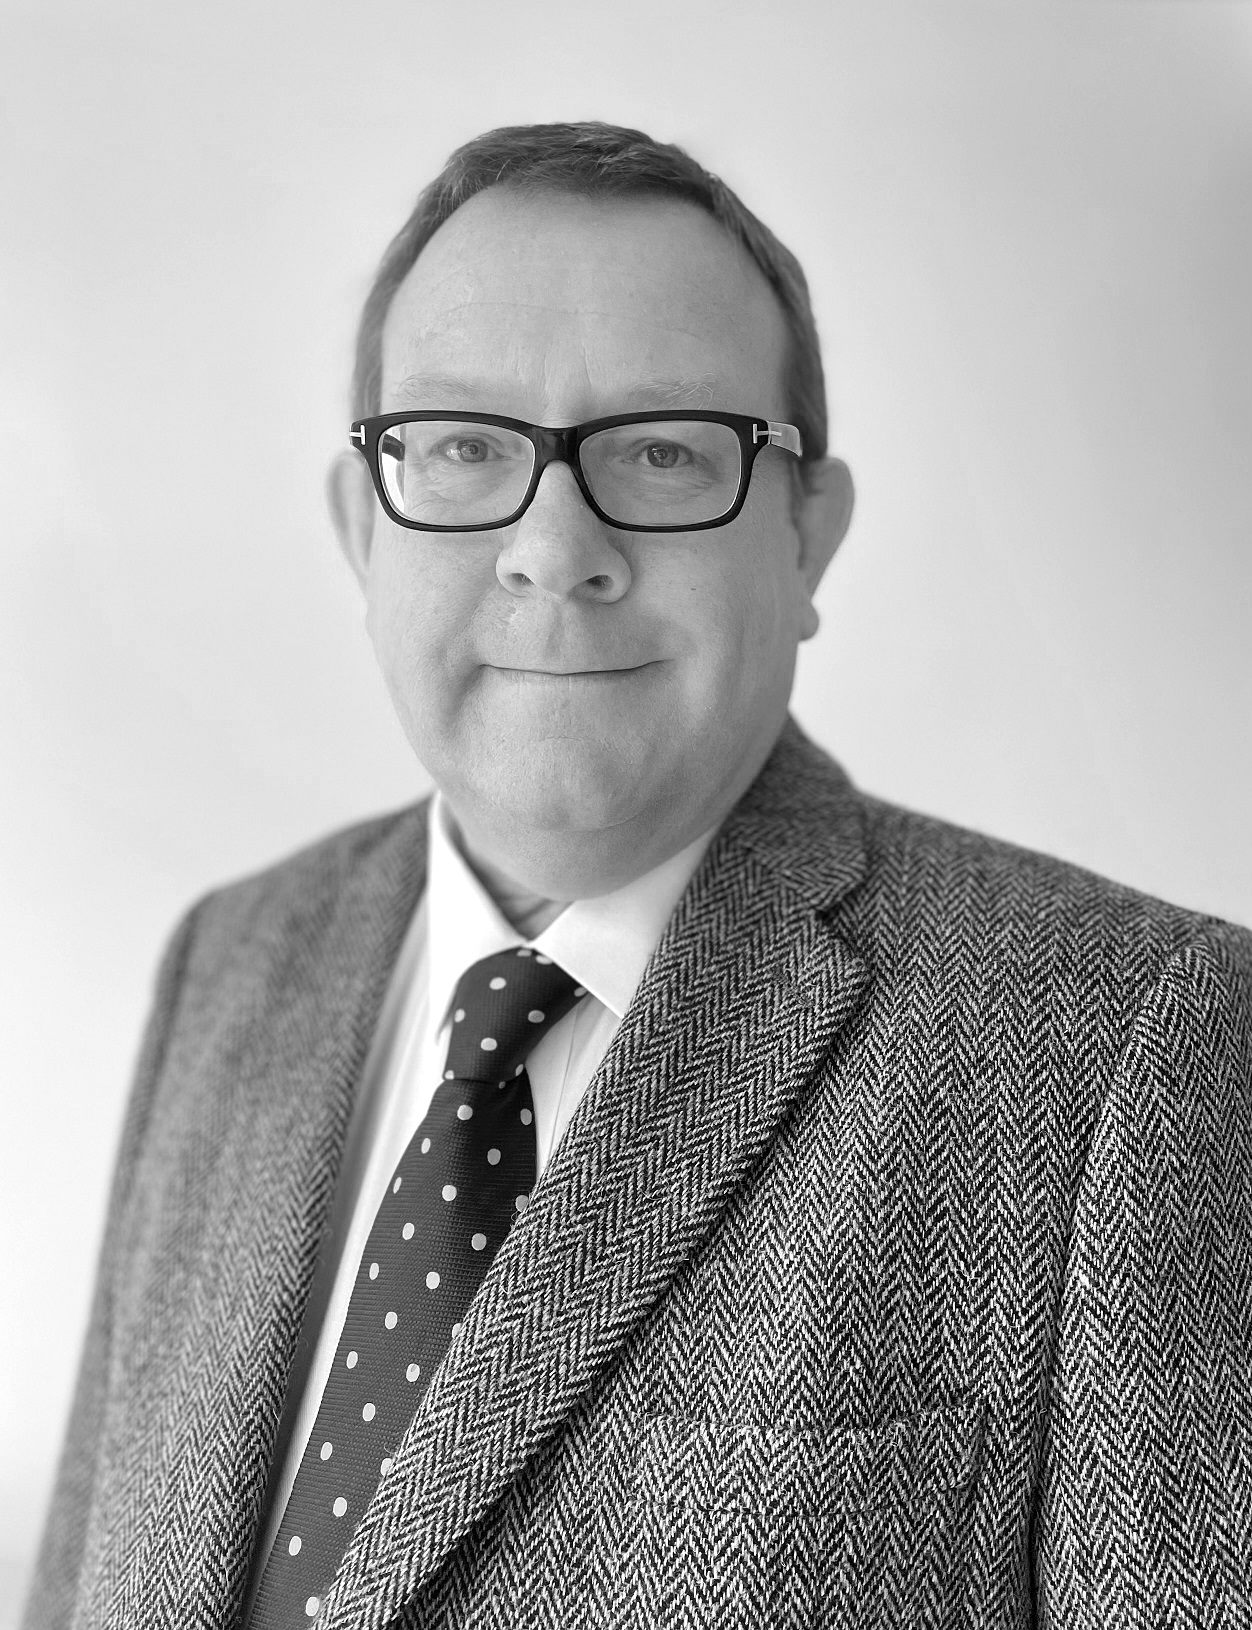 Godwin Developments appoints senior director to spearhead commercial growth